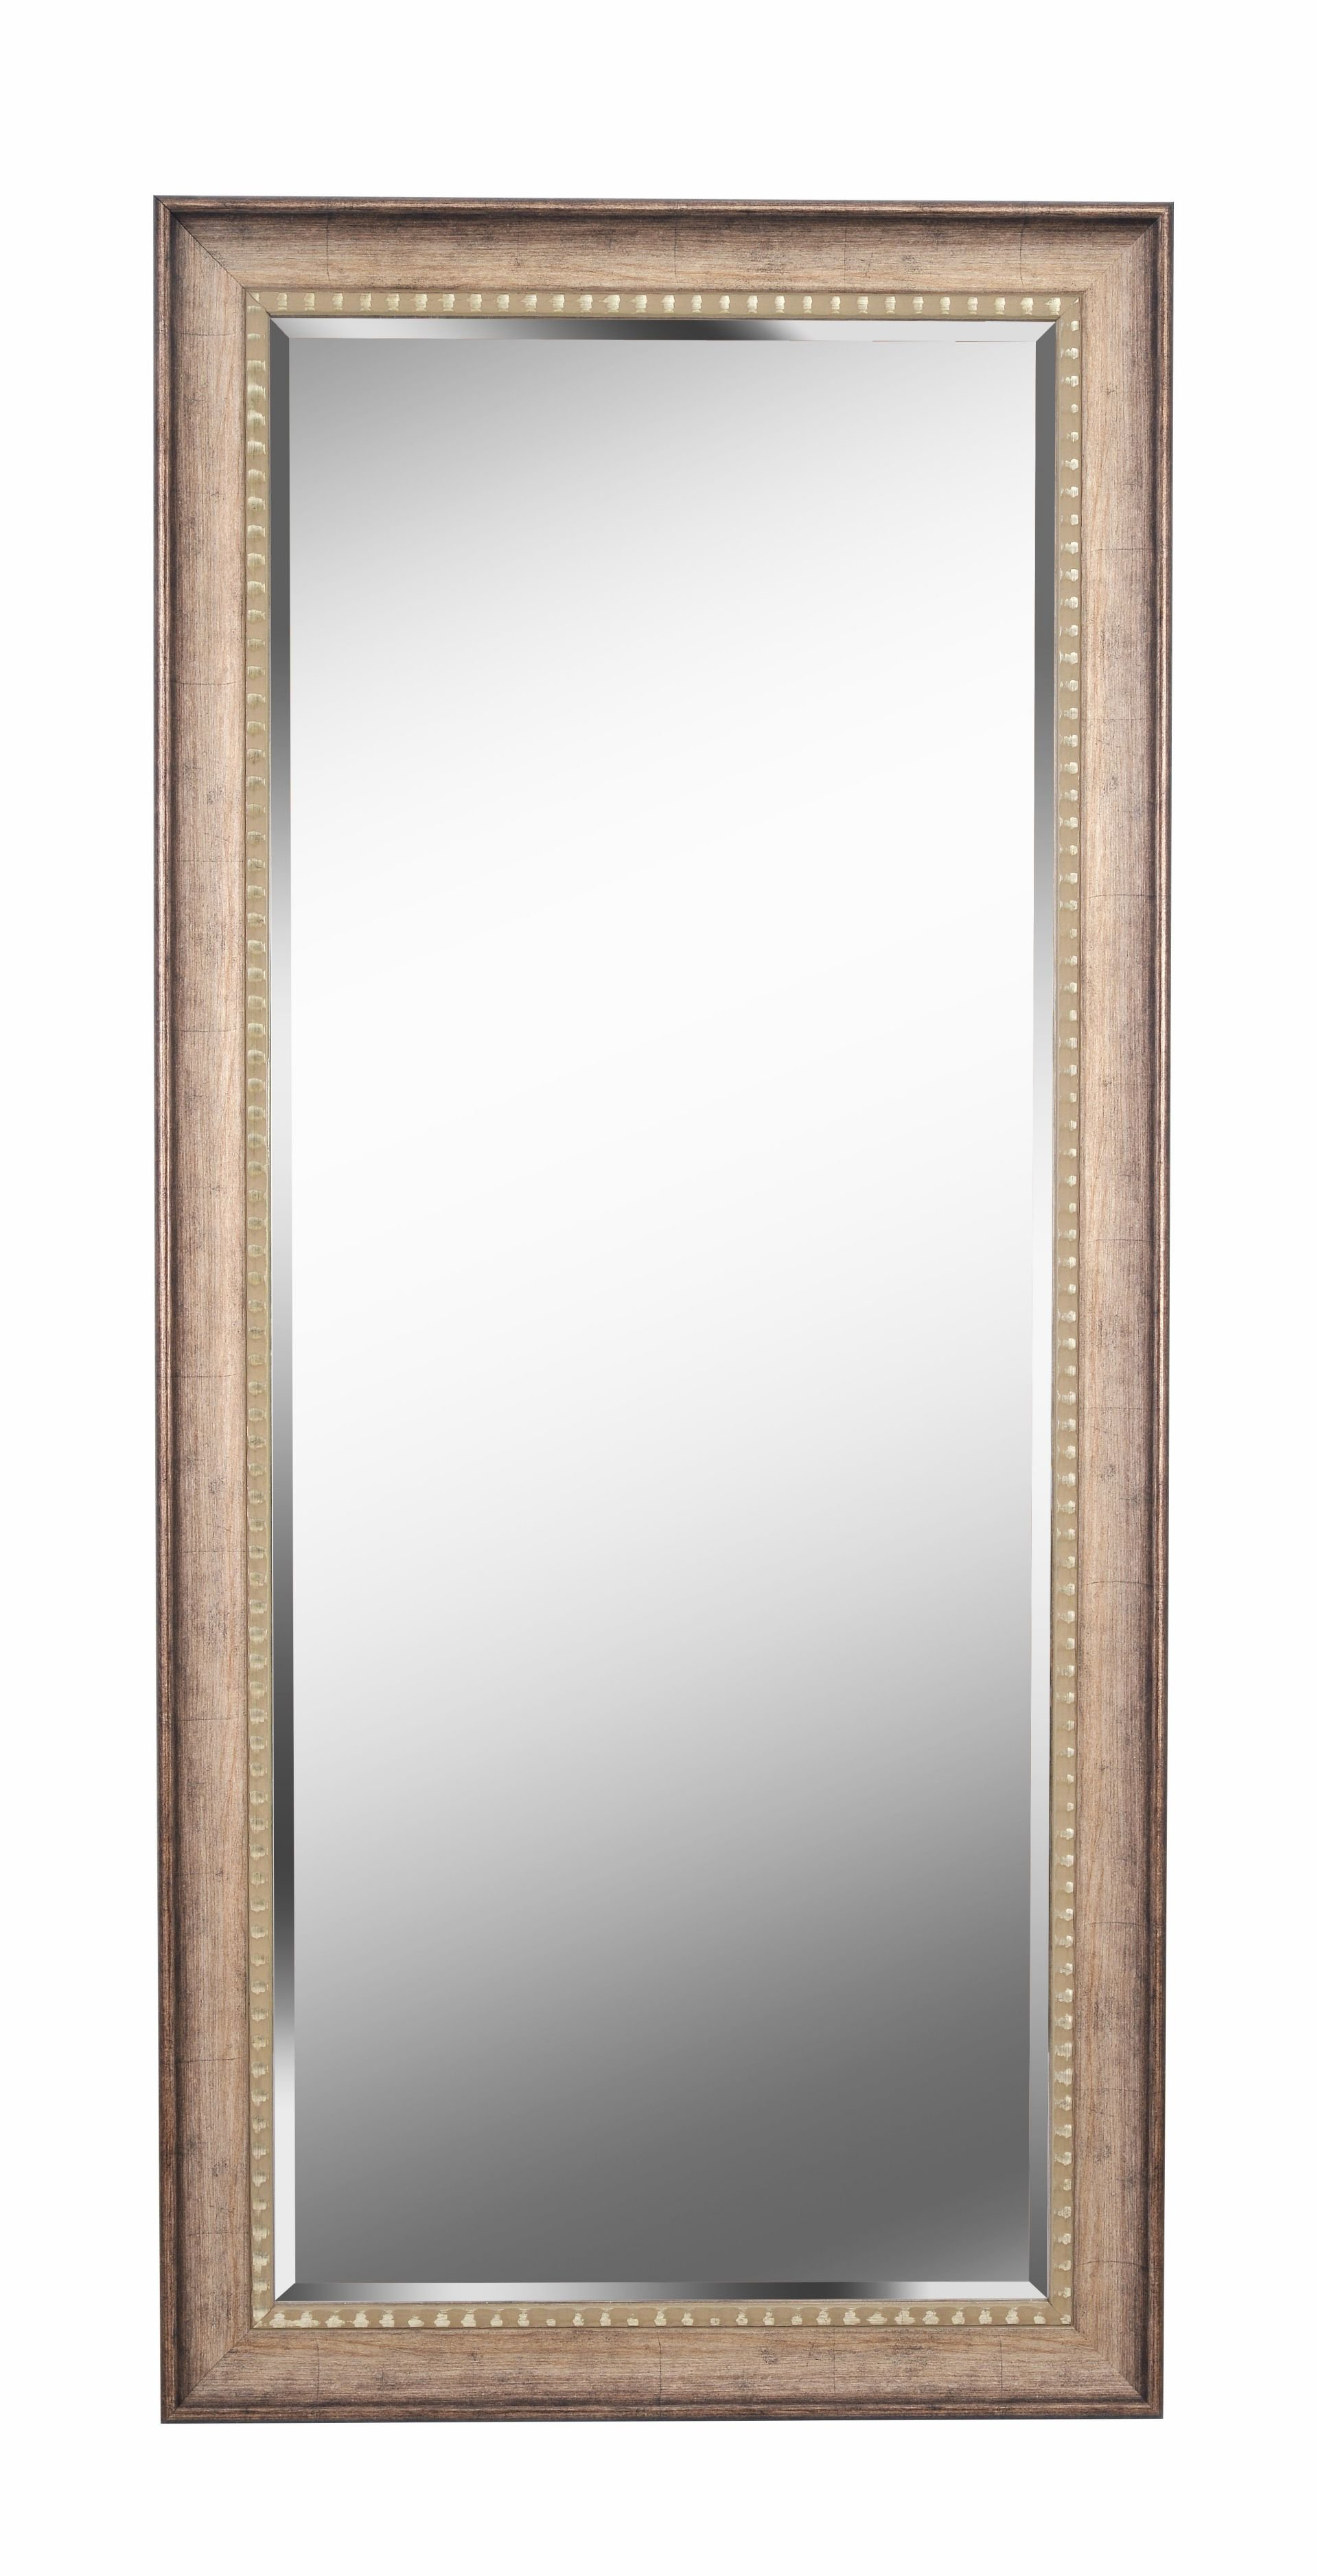 Brunswick Floor Rustic Beveled Distressed Full Length Mirror intended for Boyers Wall Mirrors (Image 9 of 30)